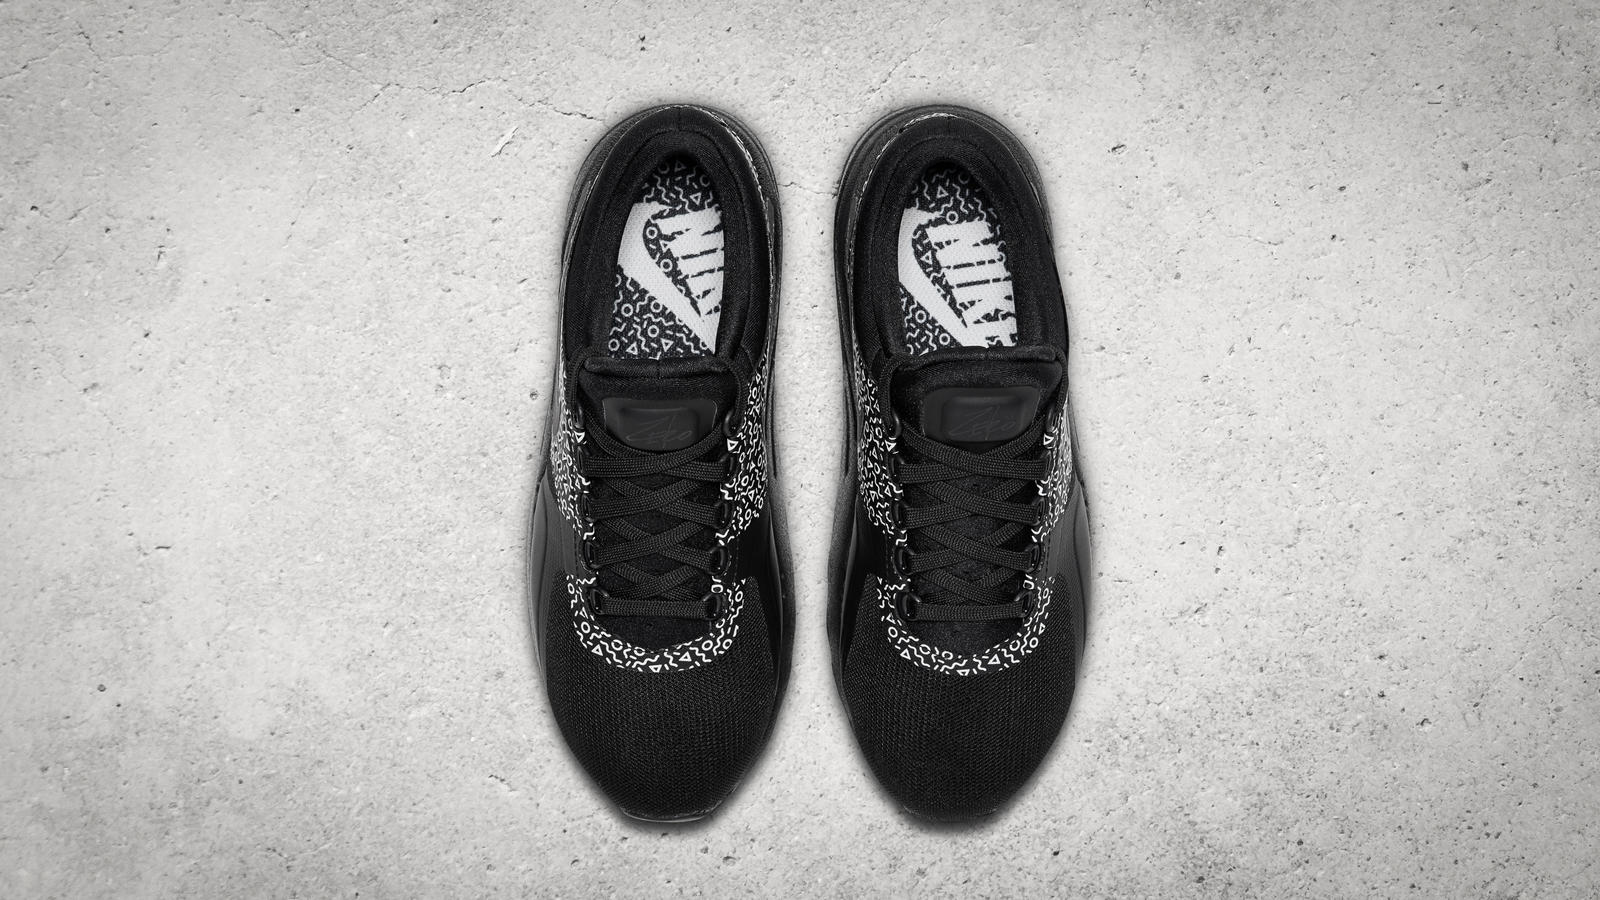 329565160e Sulivan Gwed's Nike Air Max Zero design is available January 20 in grade  school sizes on nike.com in Europe.